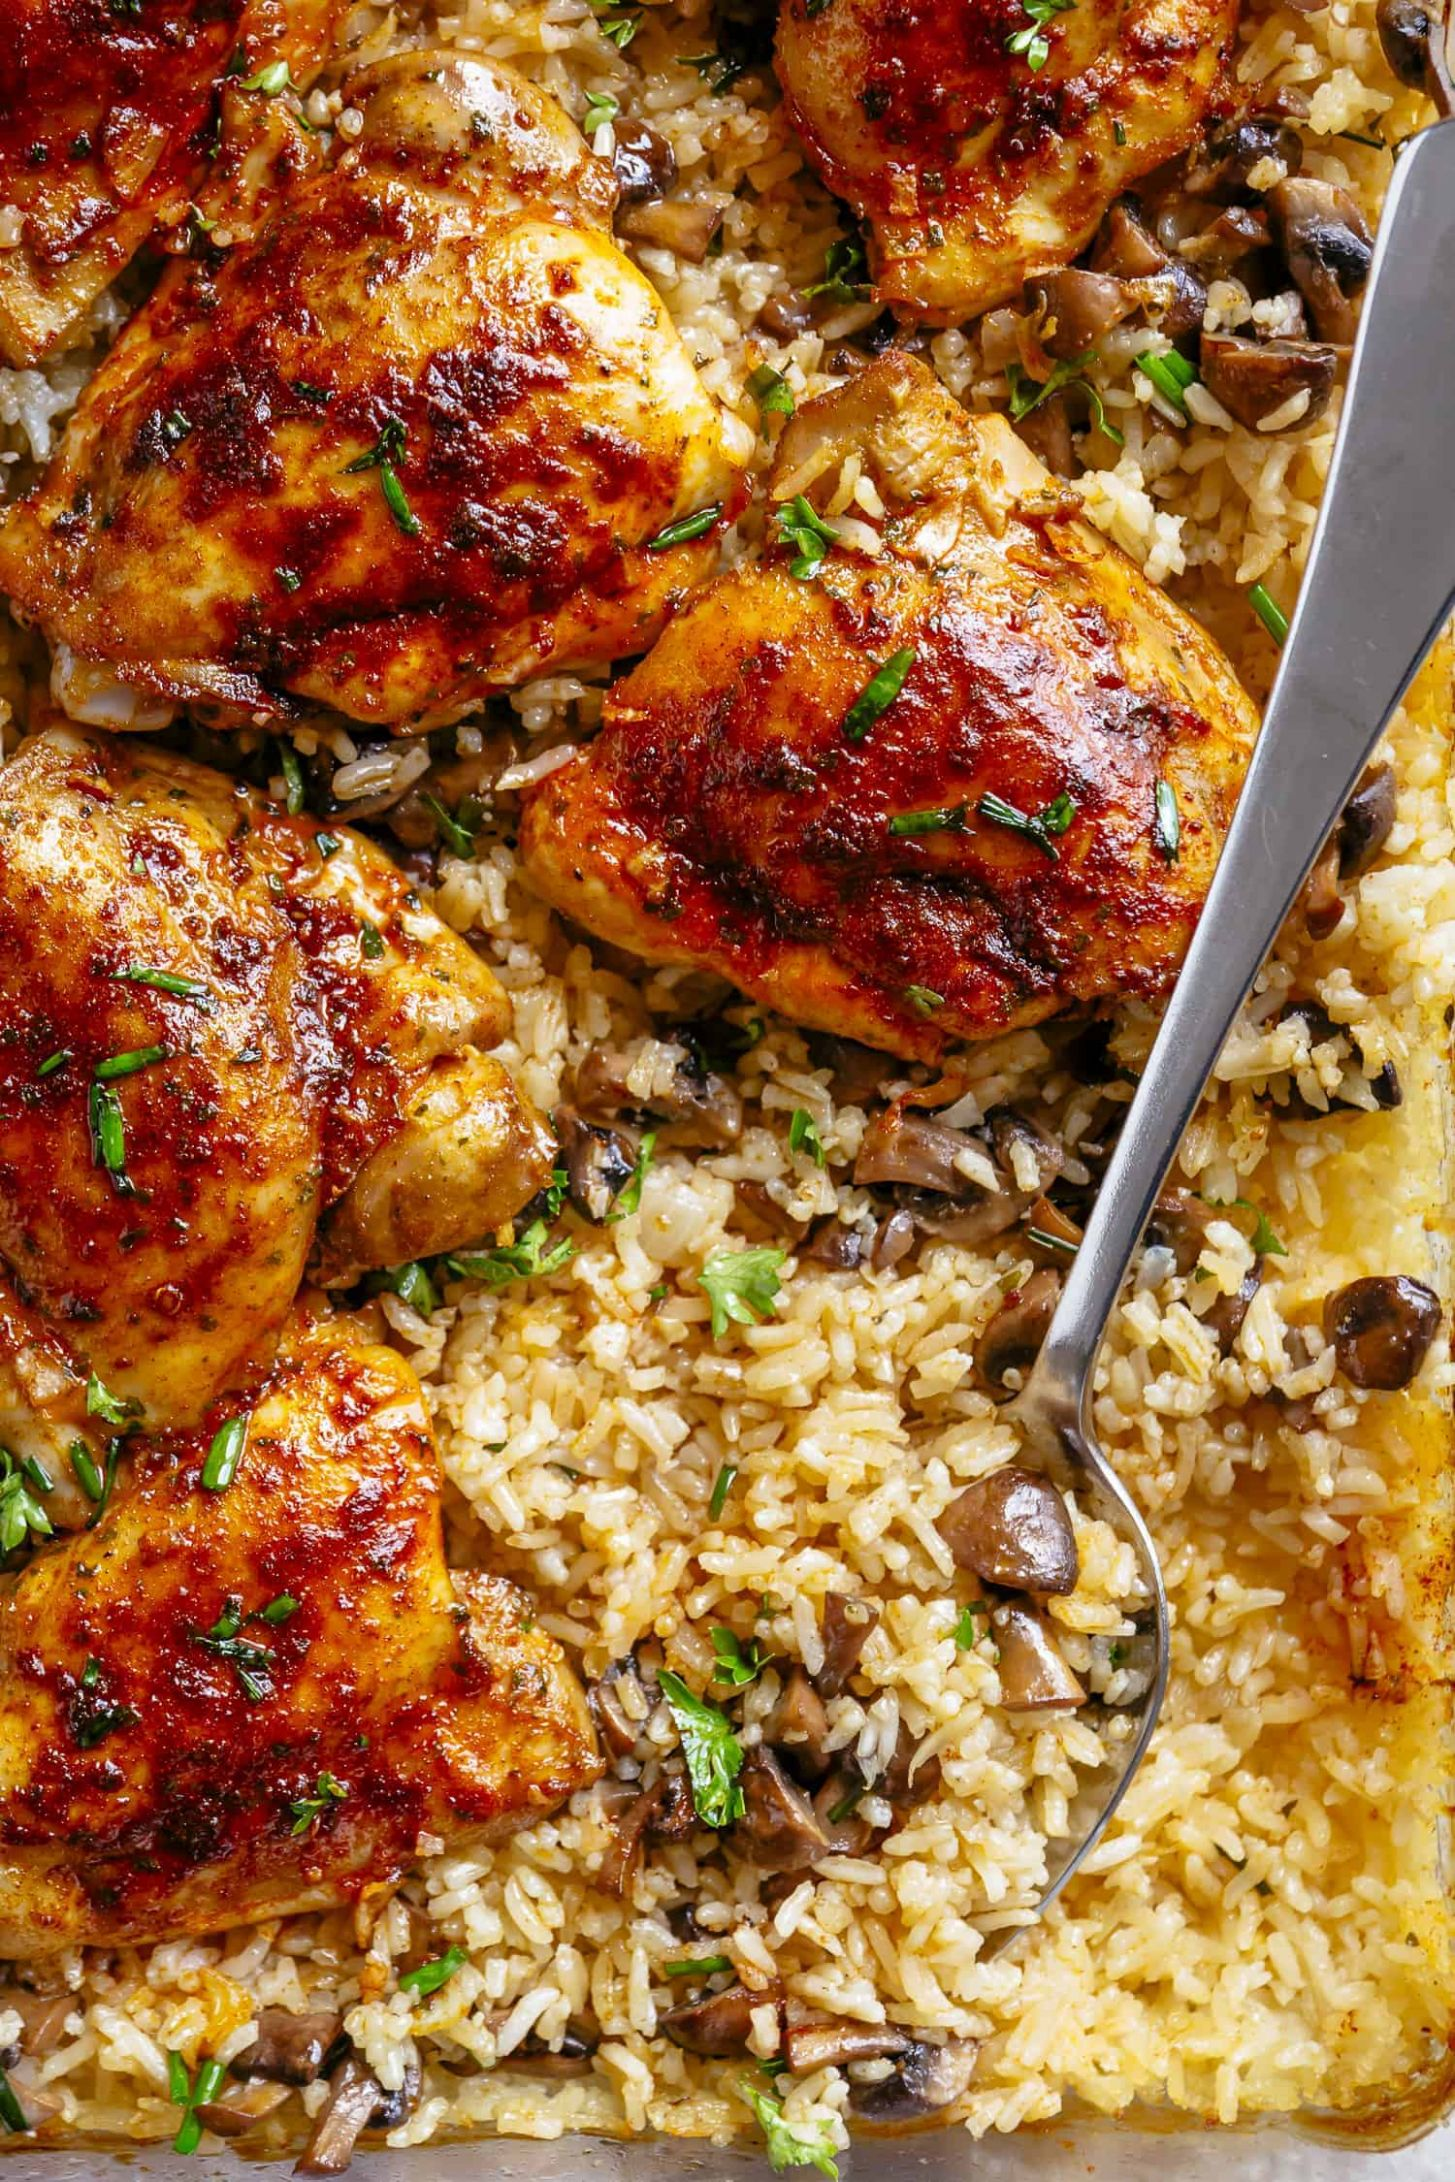 Oven Baked Chicken and Rice - Recipes Chicken Breast Rice